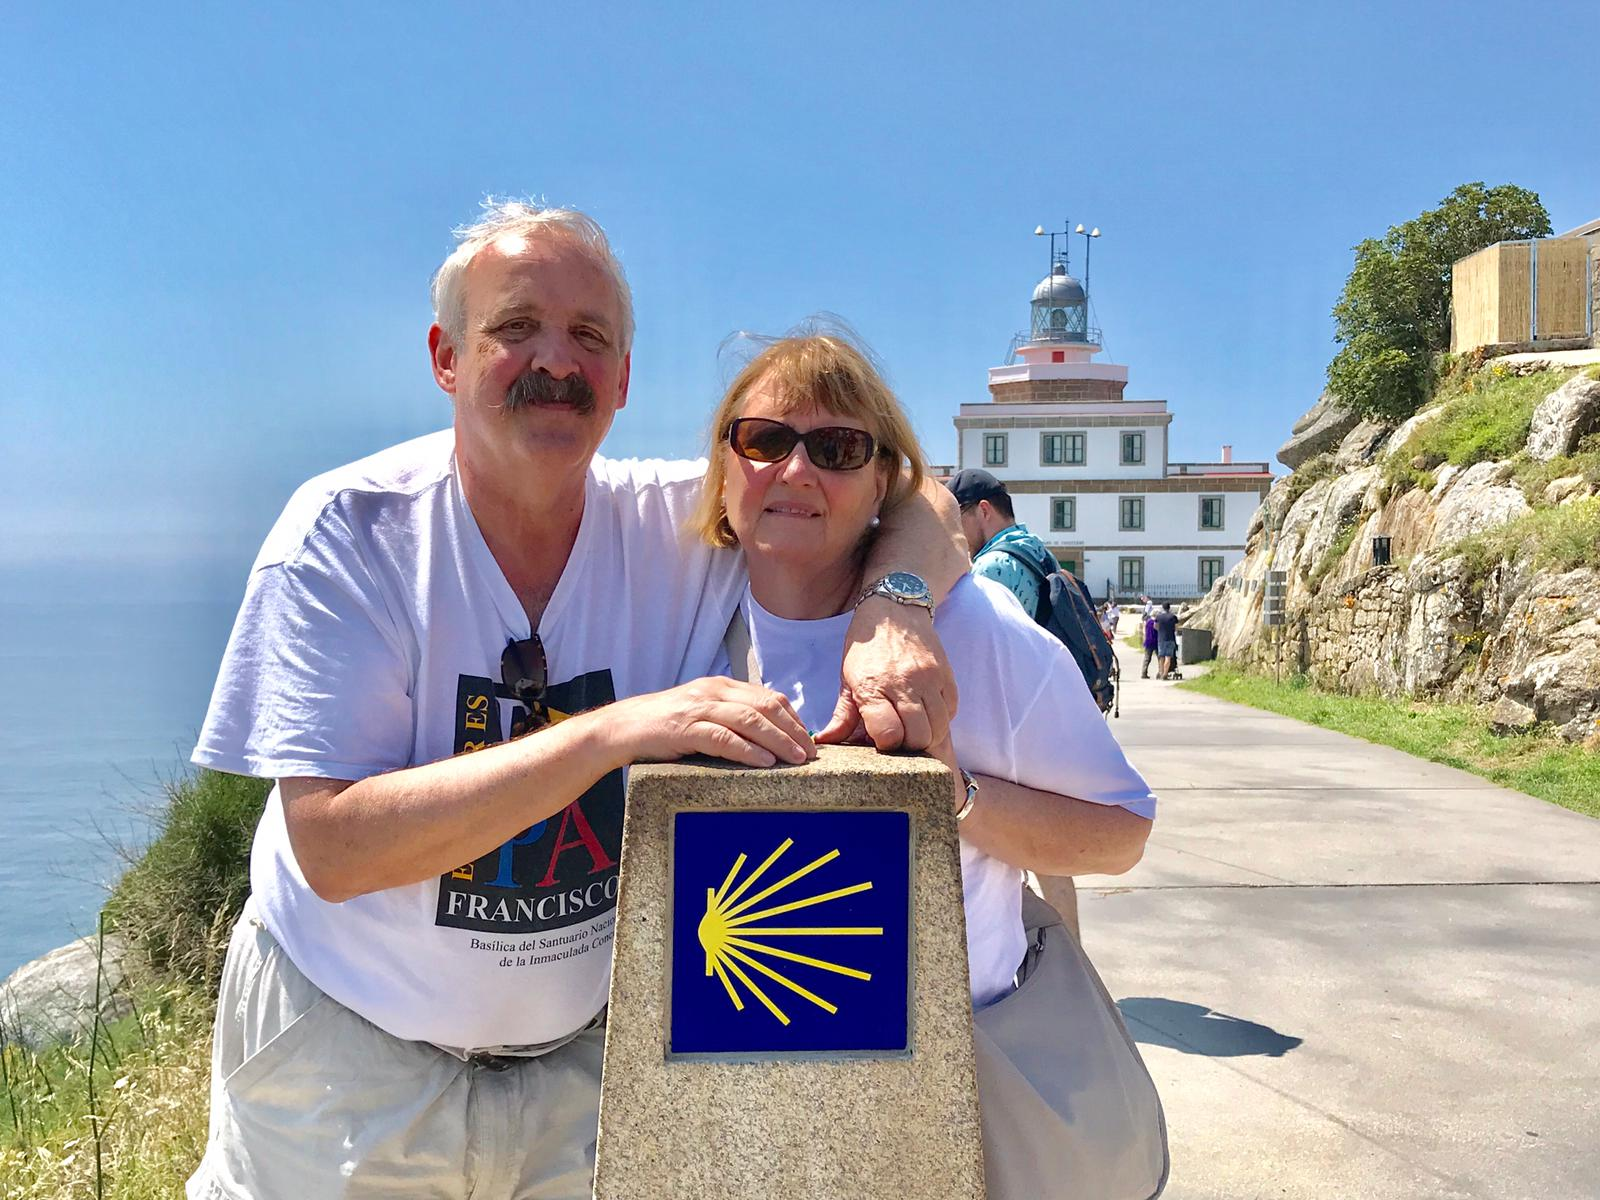 Greg and his wife enjoying a sunny day at Fisterra, which is an hour and a half away from Santiago de Compostela, Spain.